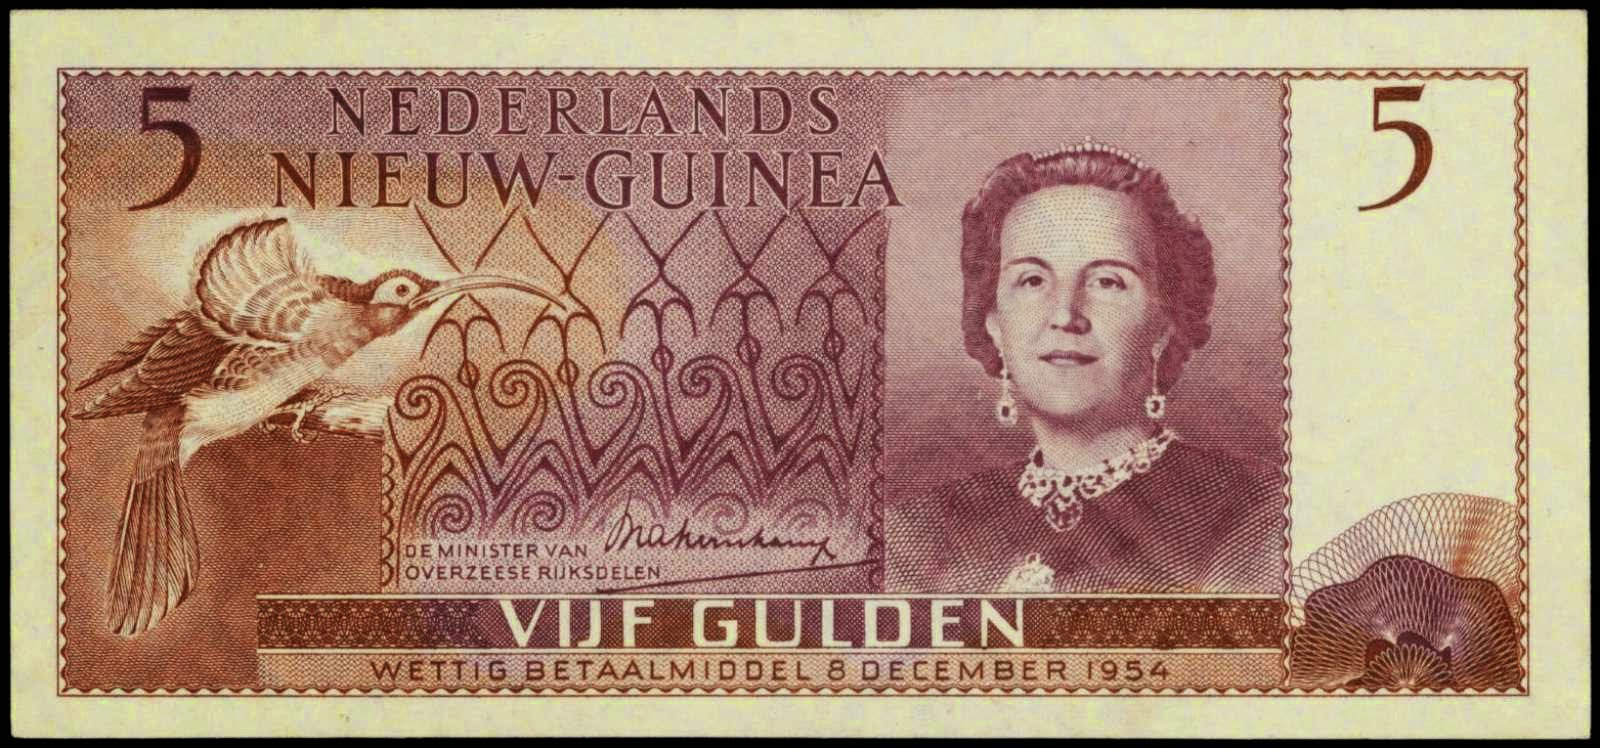 Netherlands New Guinea banknotes 5 Gulden bank note 1954 Queen Juliana